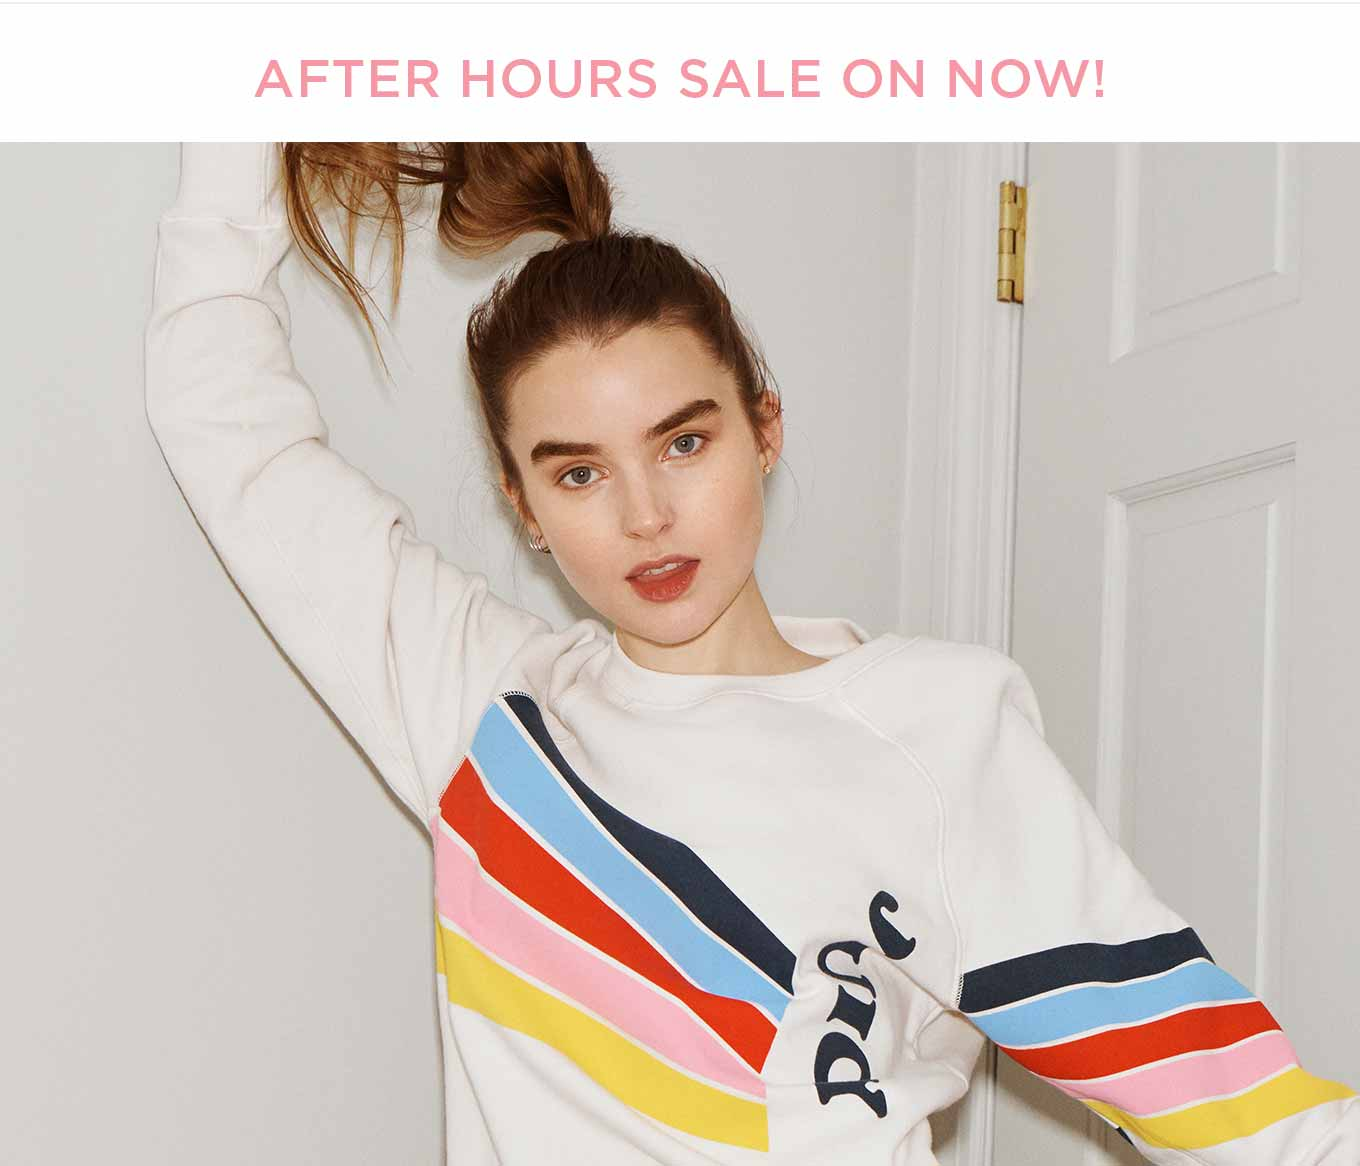 AFTER HOURS SALE ON NOW!